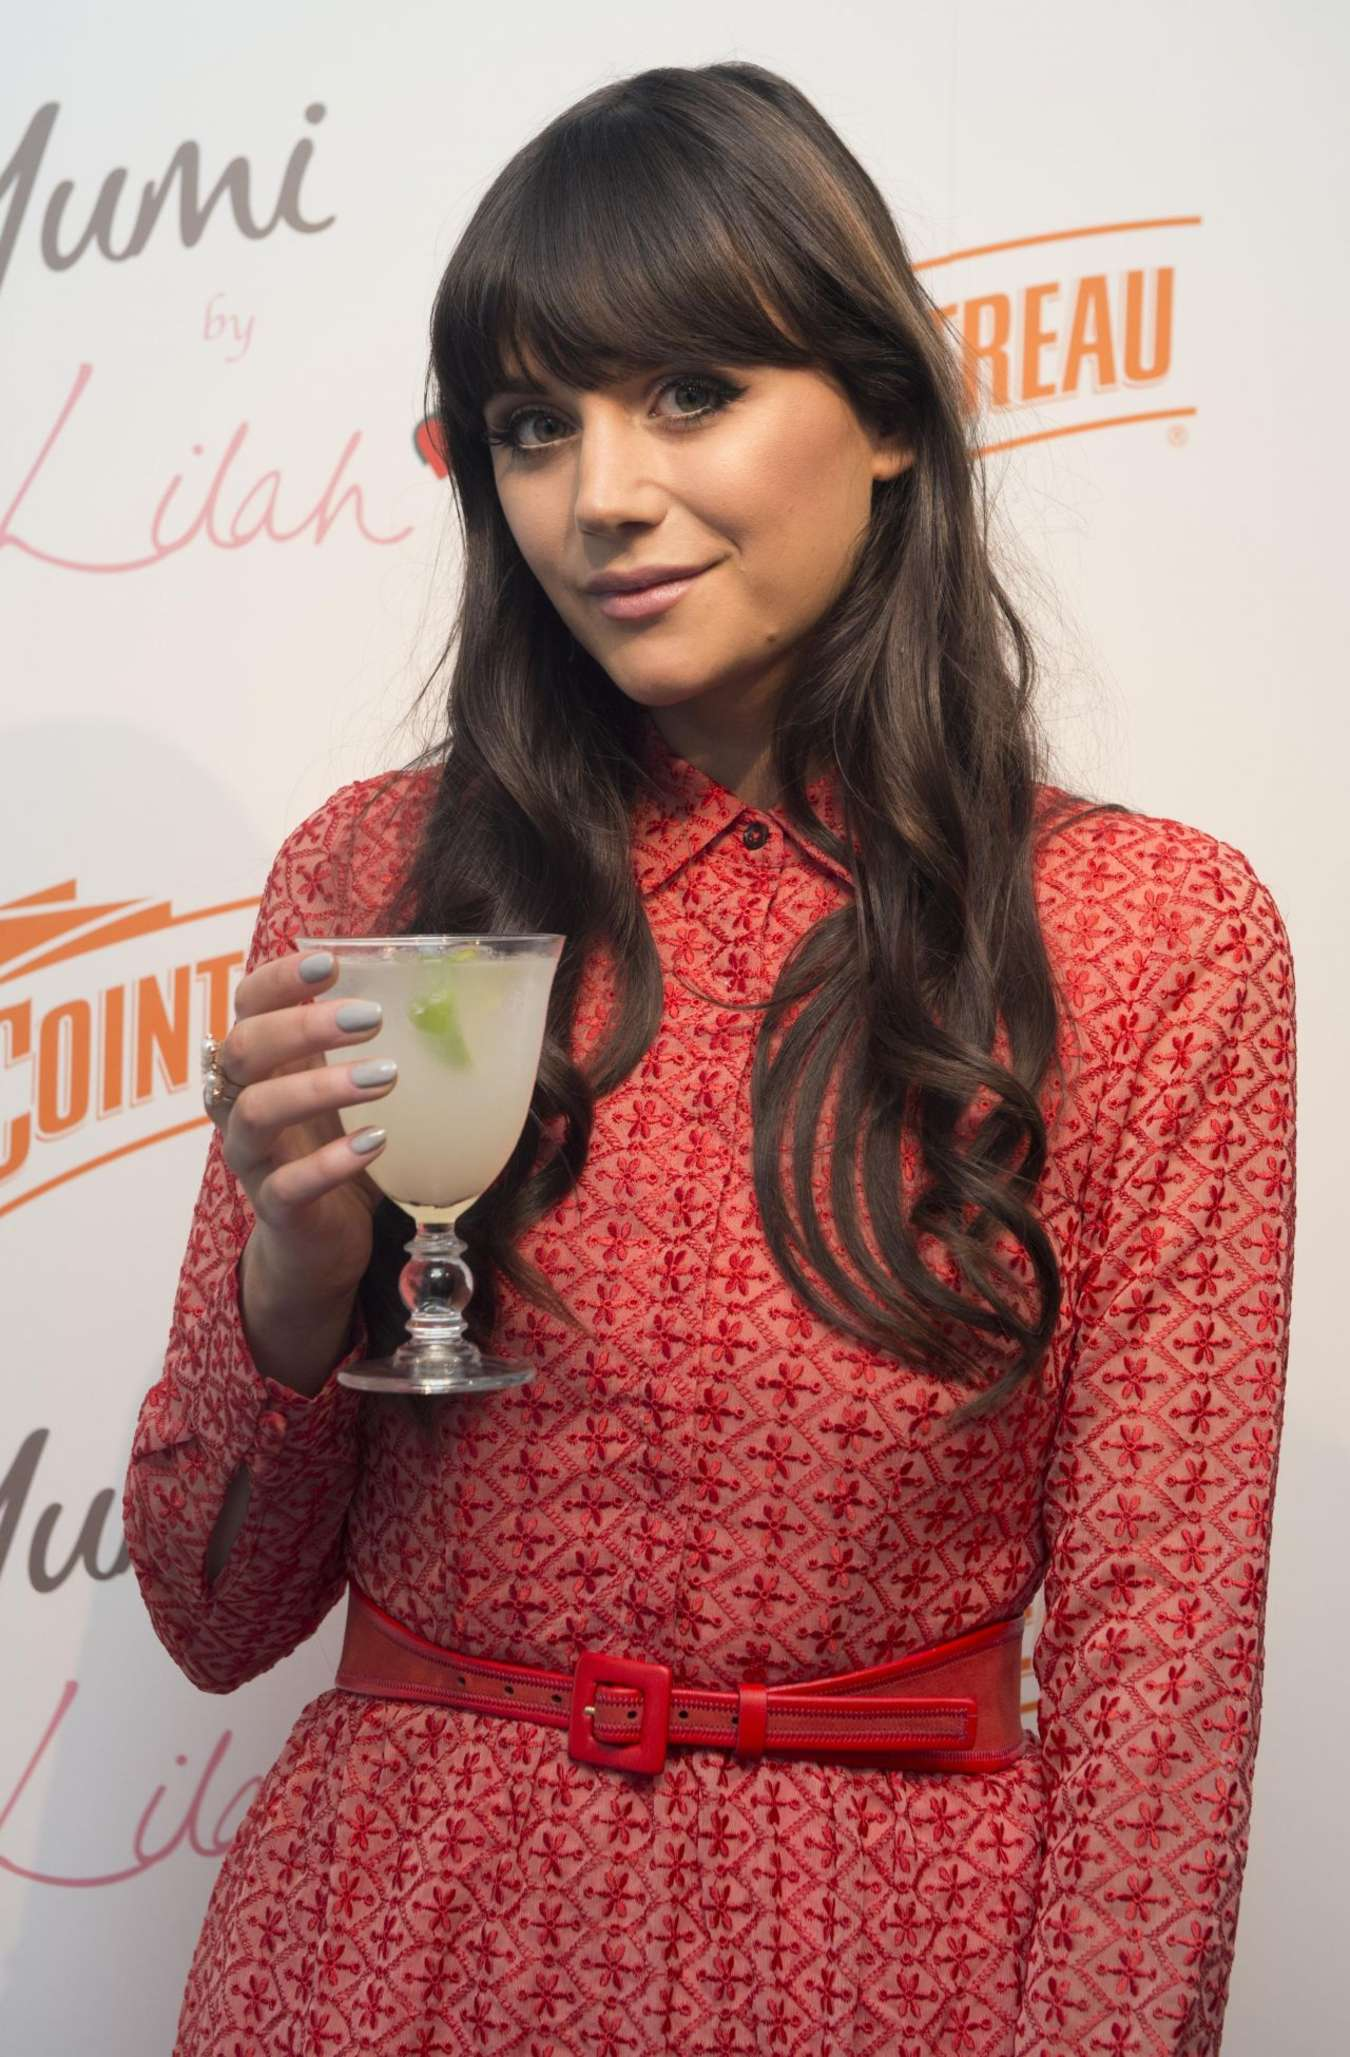 Lilah Parsons Cointreau Launch Party for Yumi By Lilah Collection in London